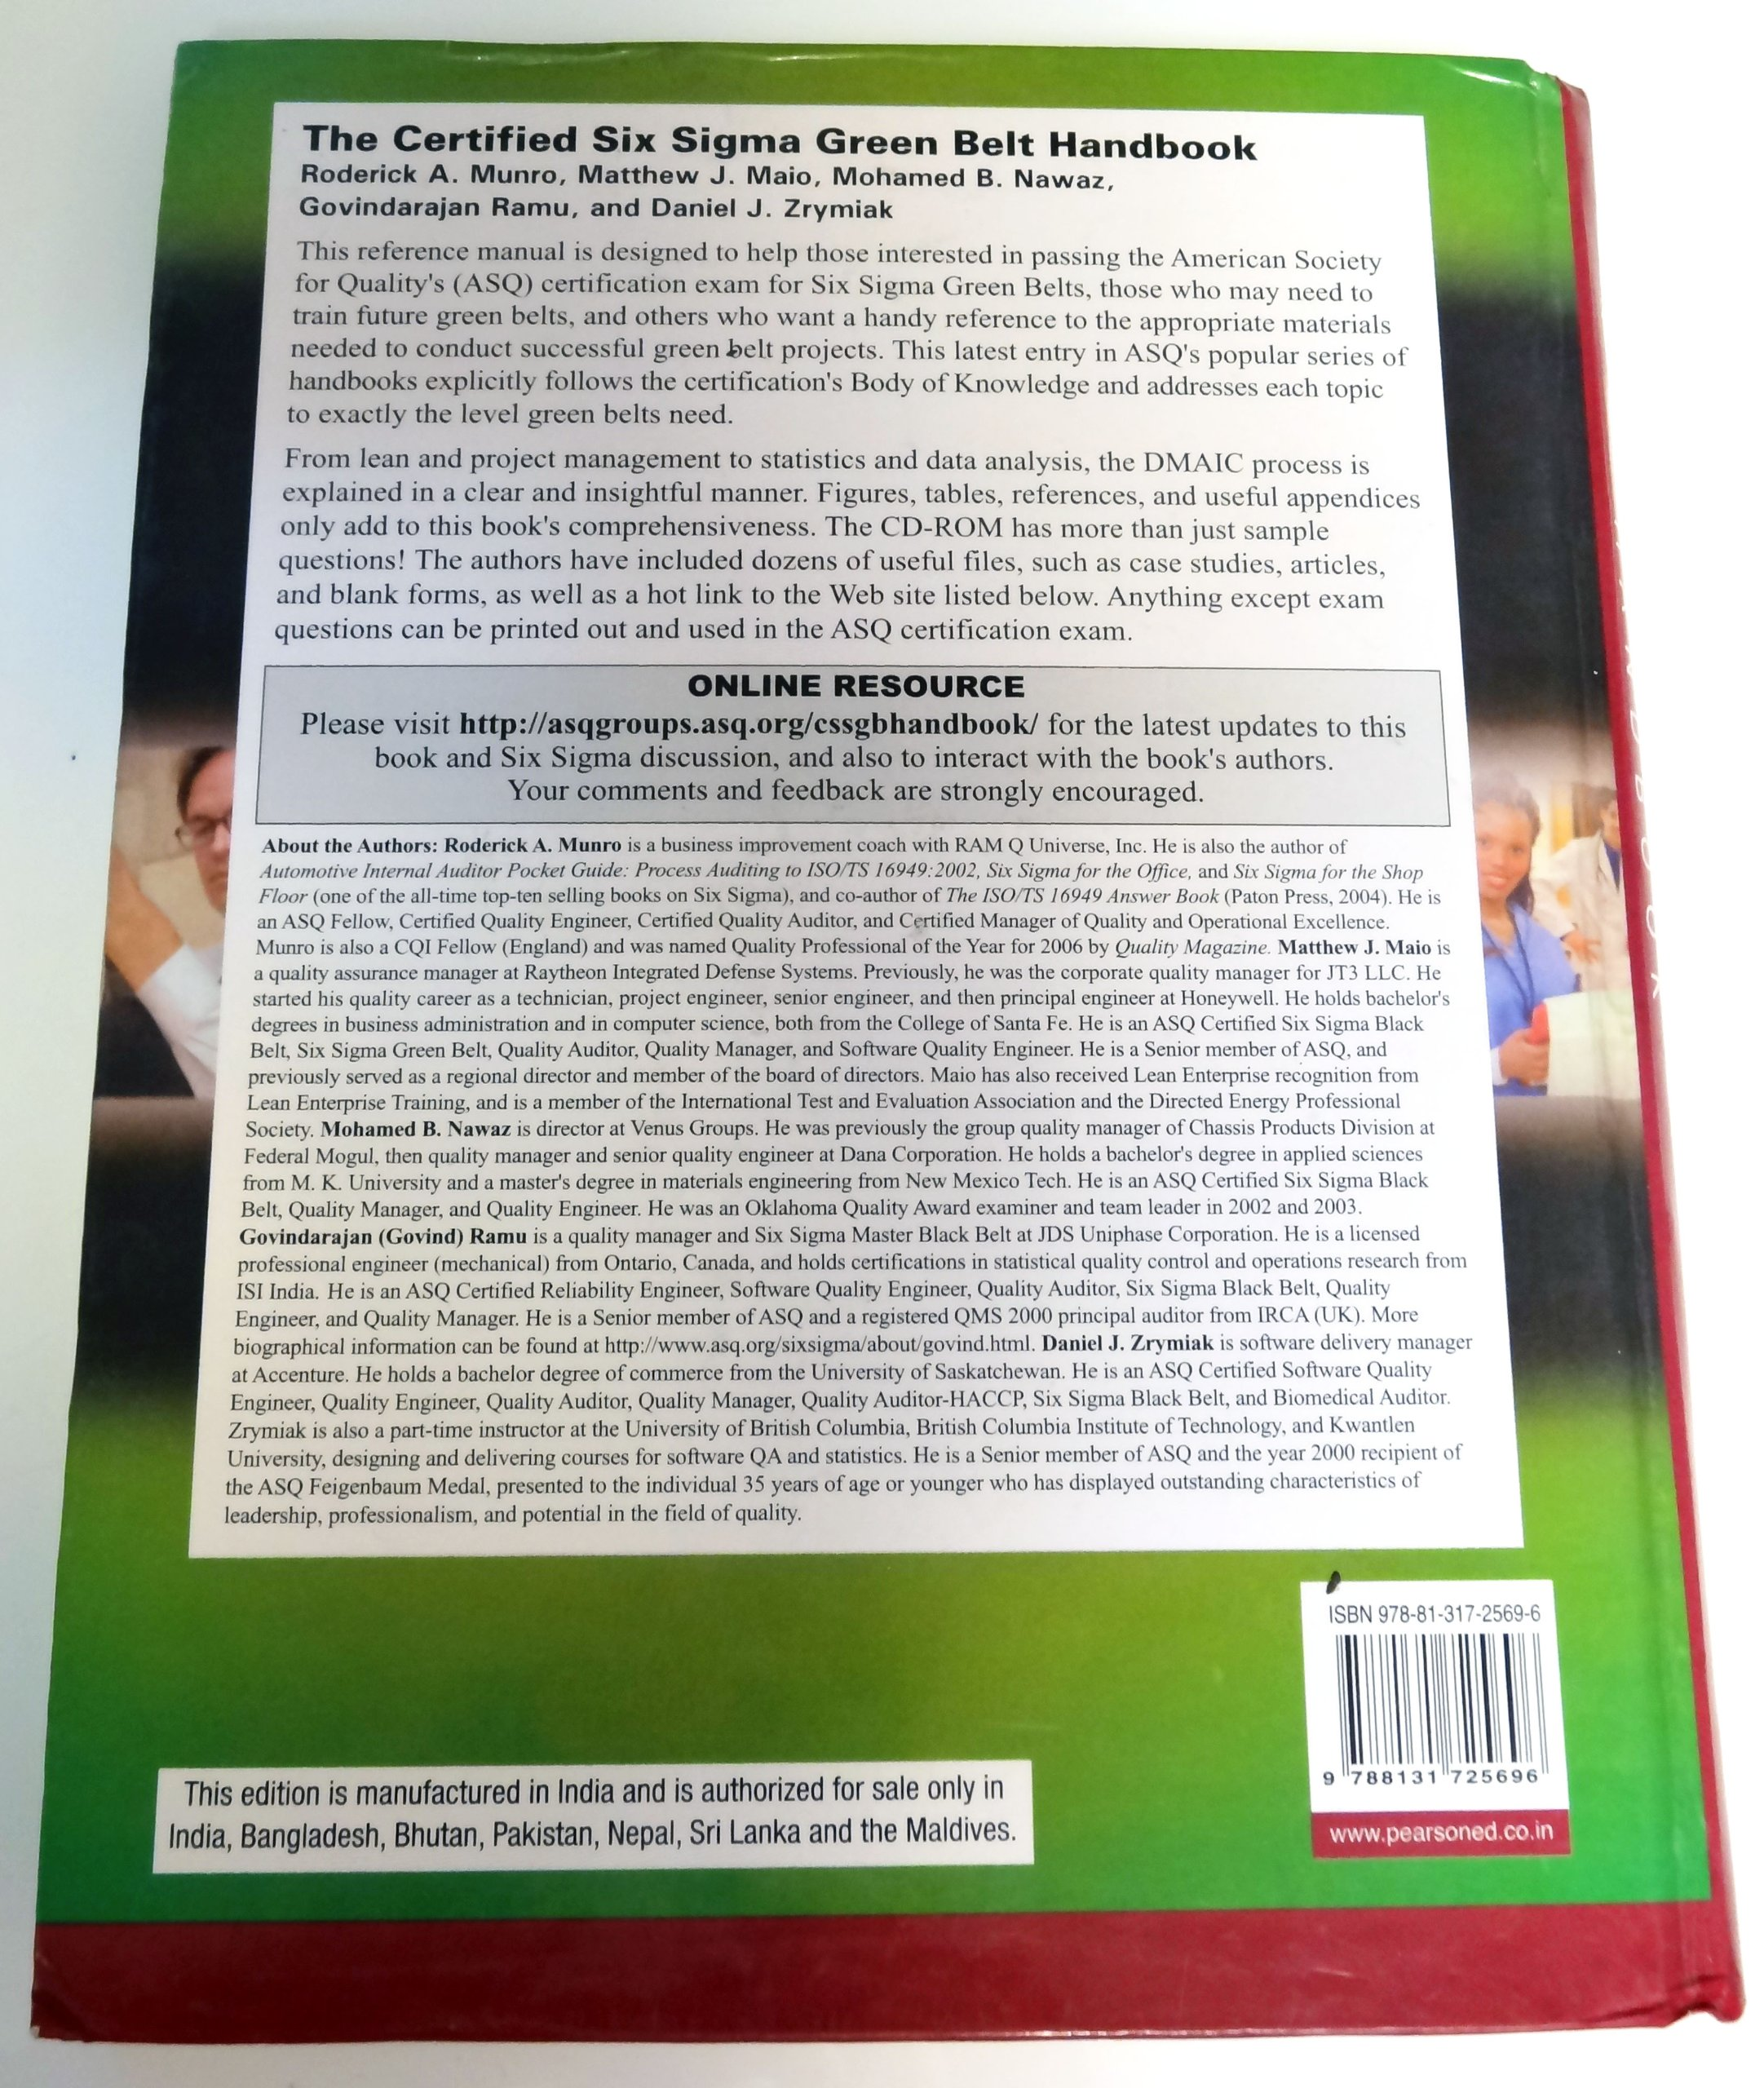 The Certified Six Sigma Green Belt Handbook Amazon Munro